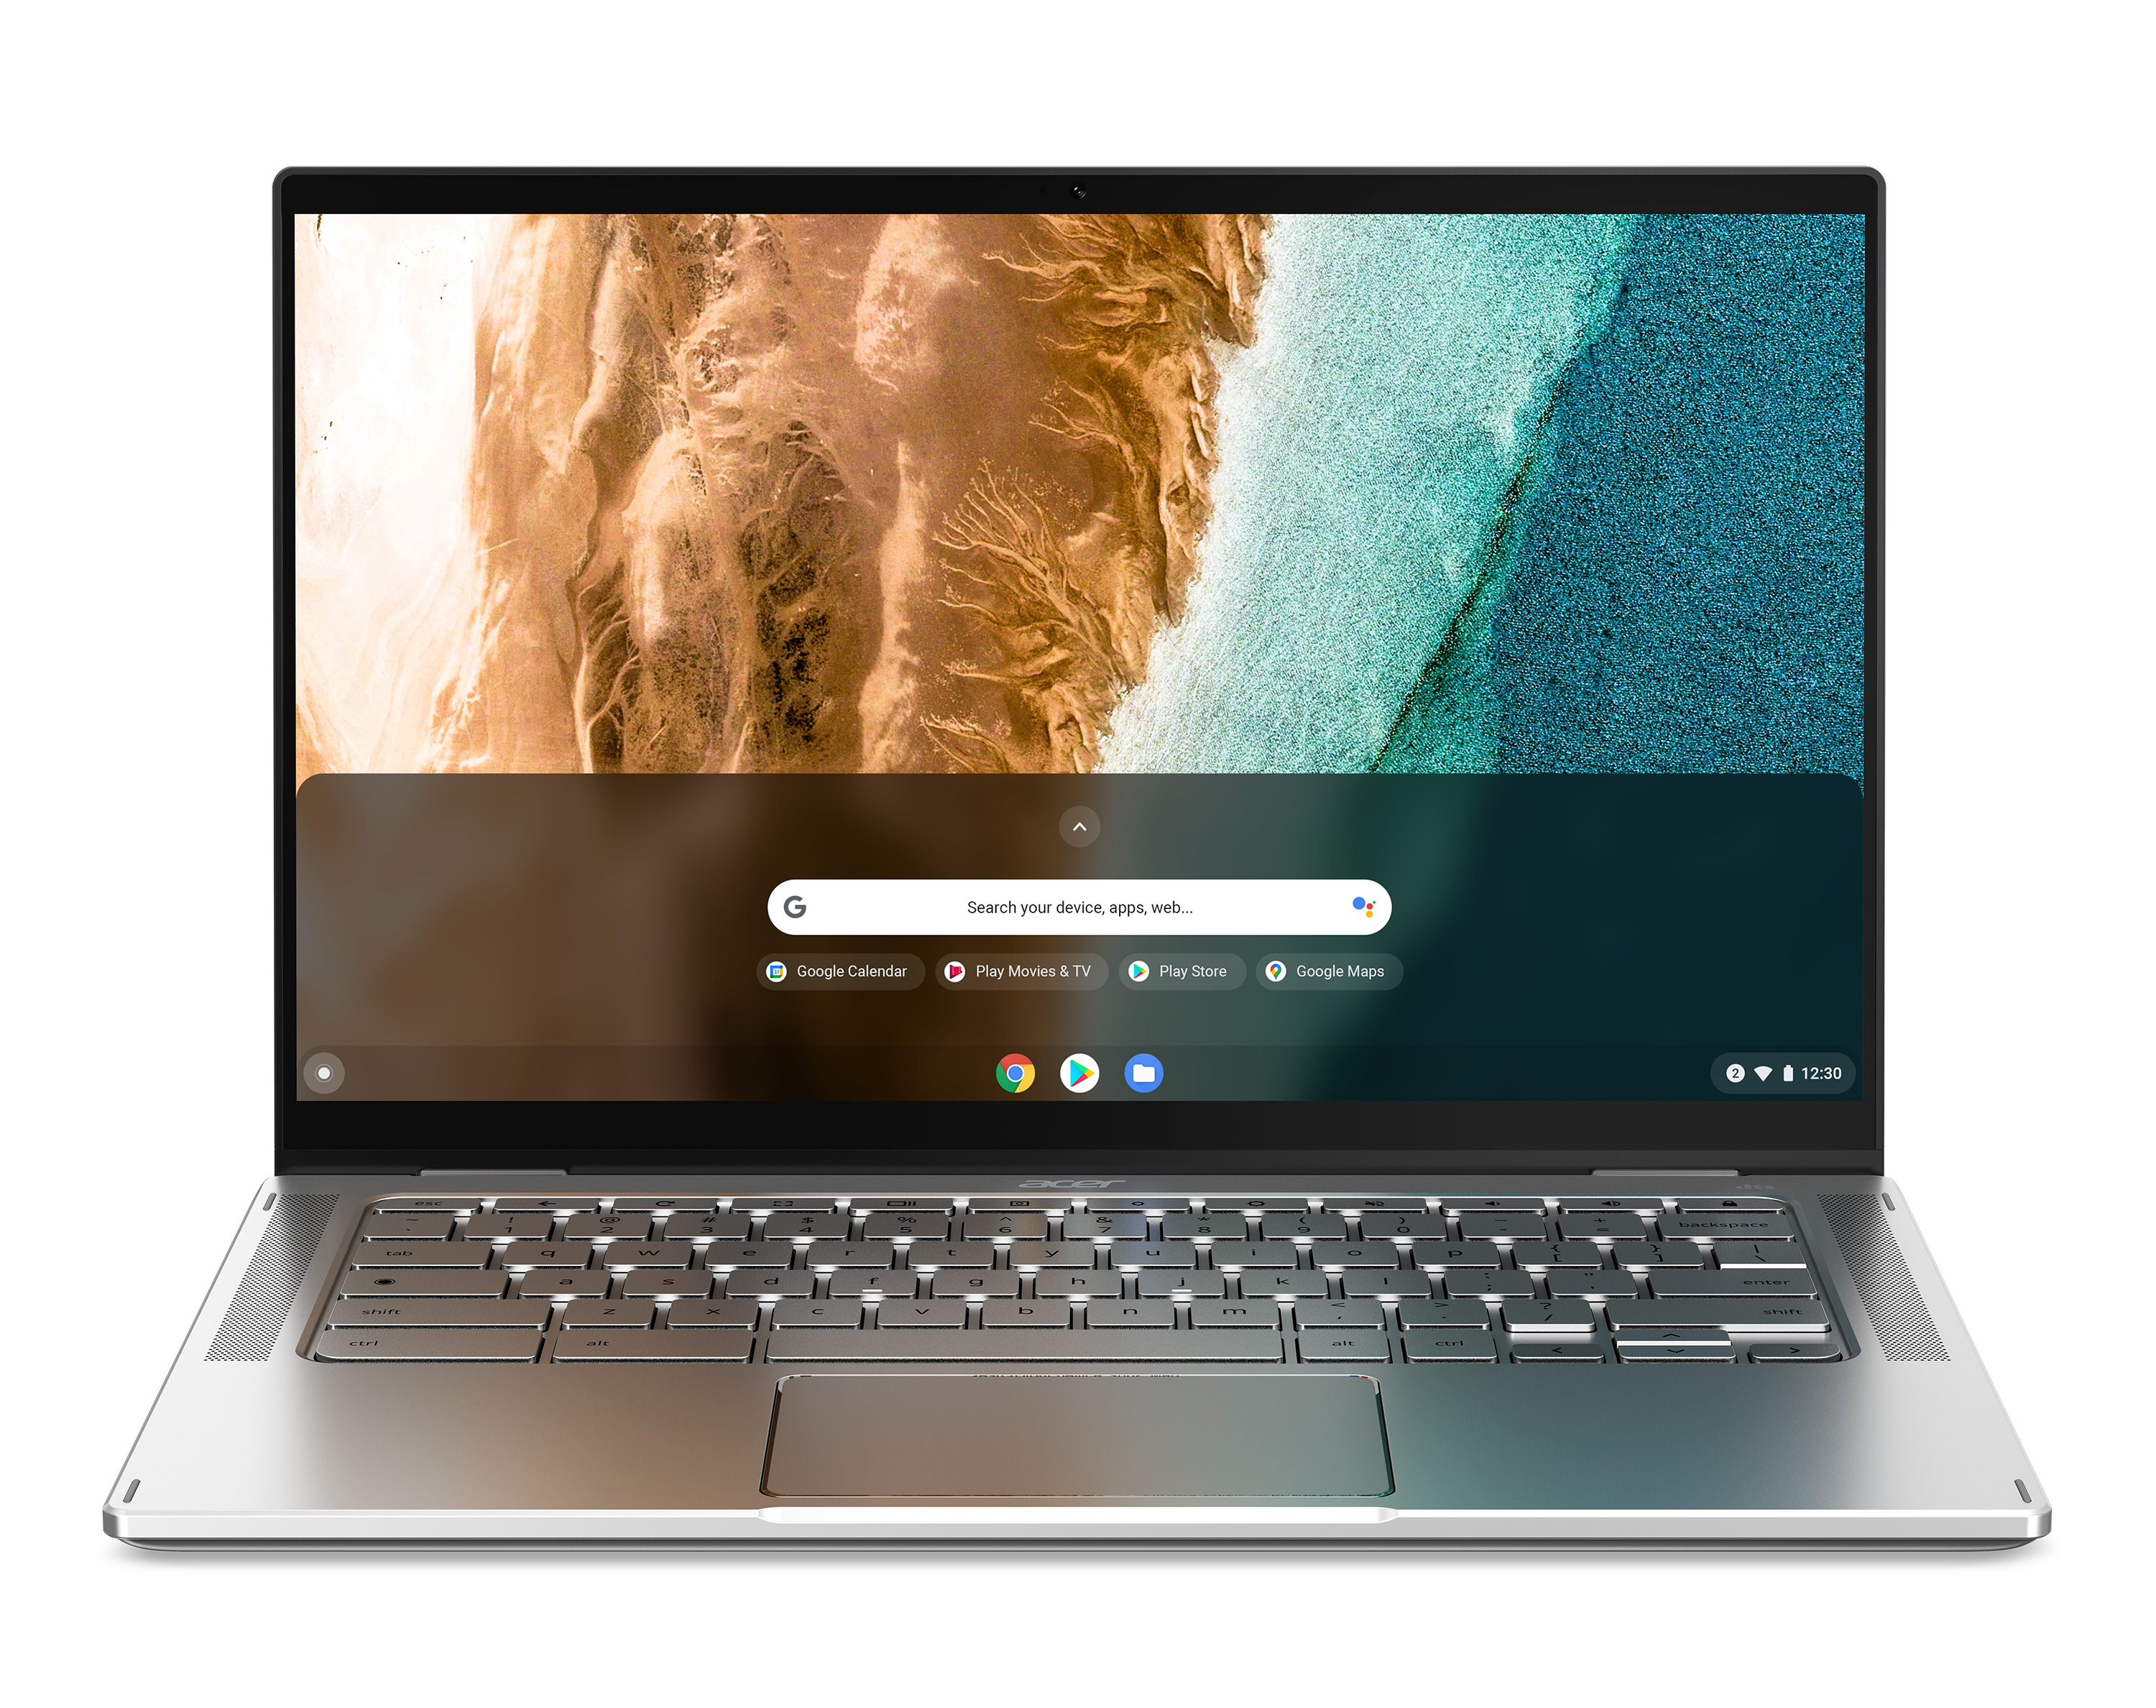 Acer's new Chromebook Spin 514 features a fanless design and improved webcam